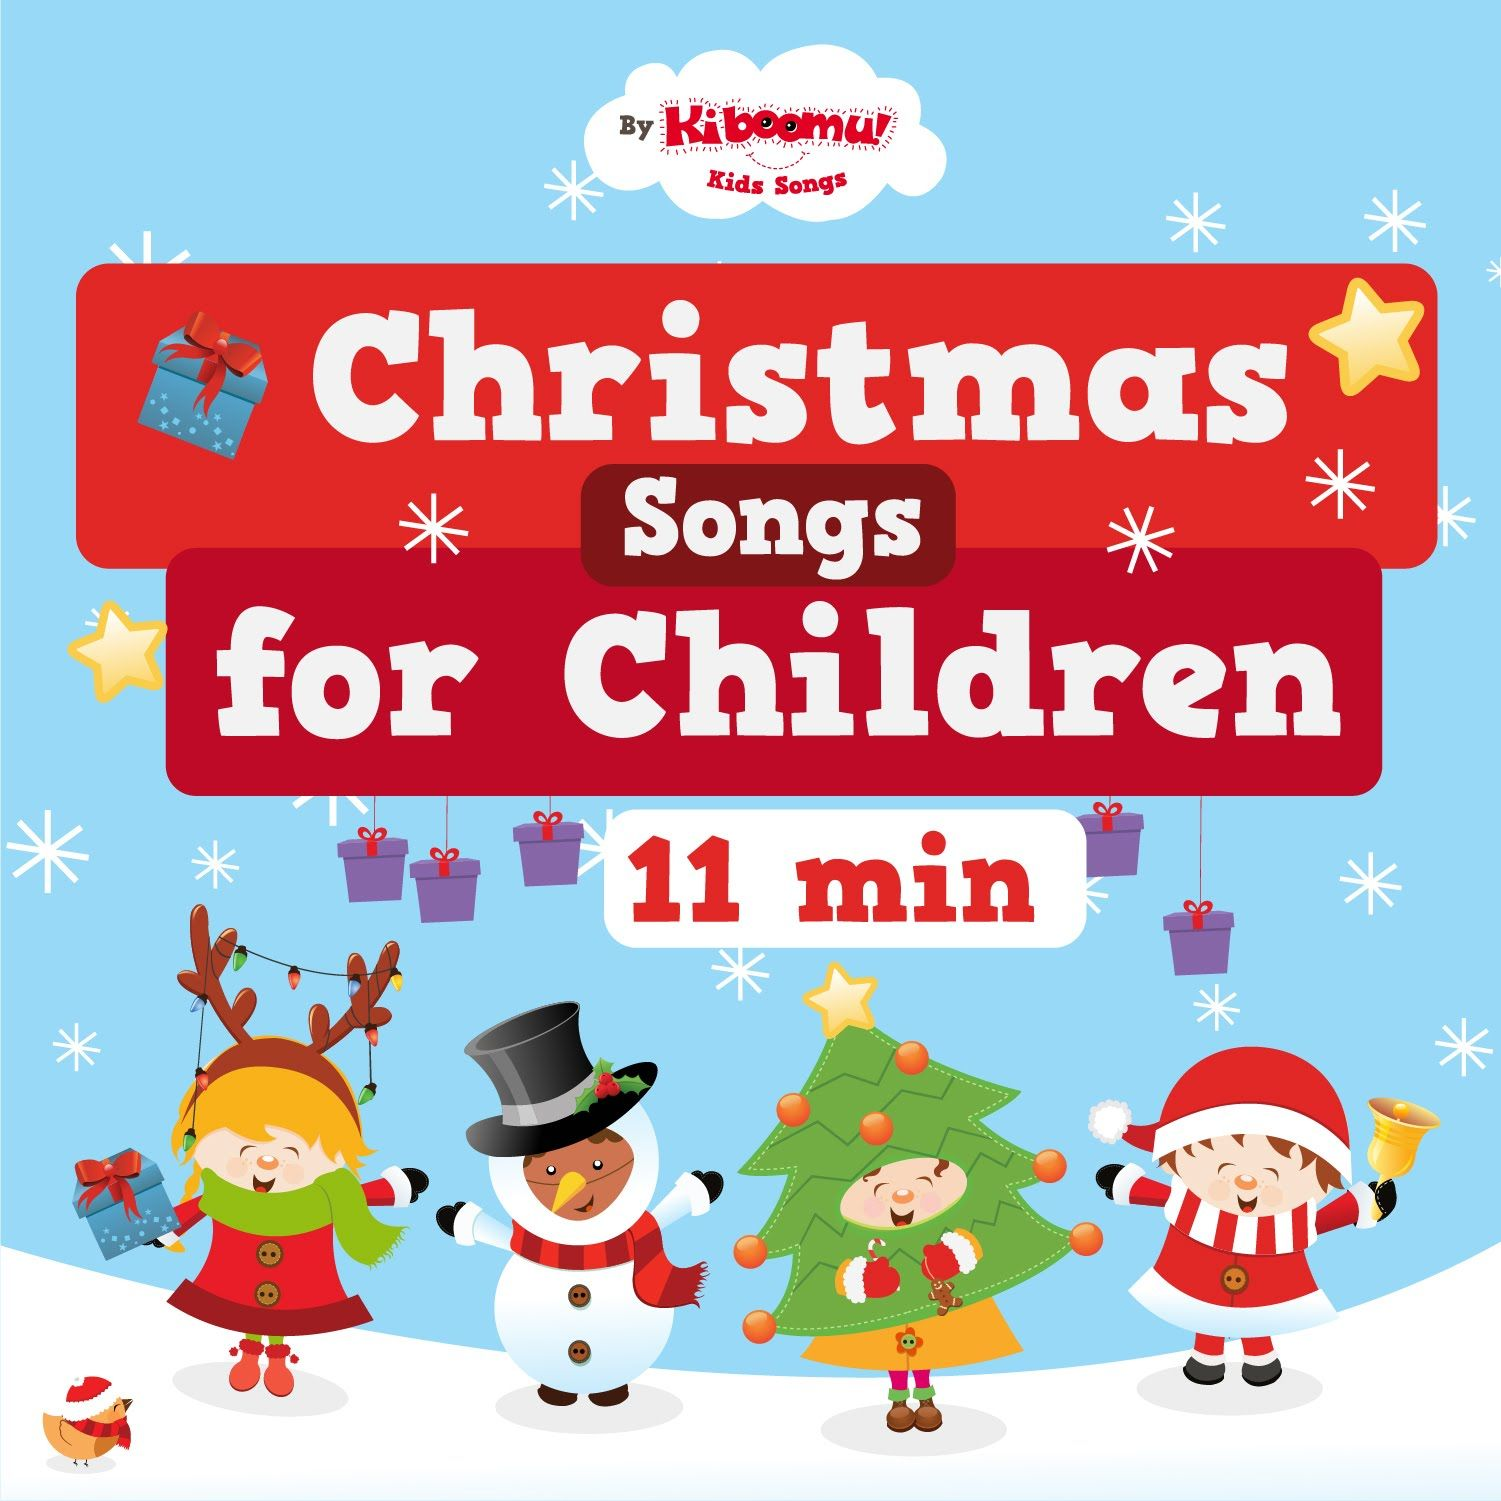 BEST Christmas music videos for Children! 11 minutes of festive fun ...